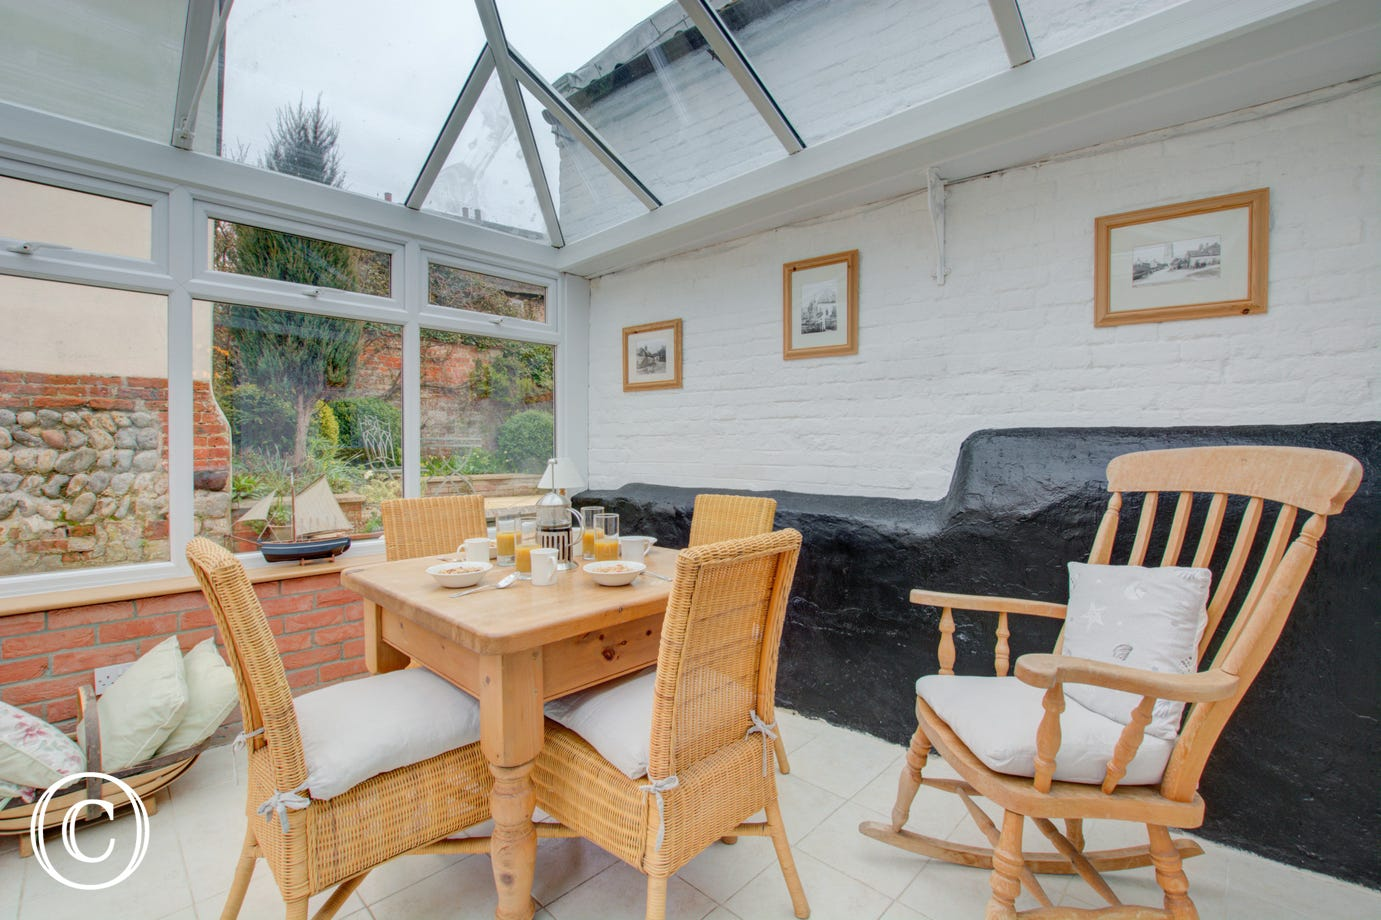 This property benefits from a lovely conservatory